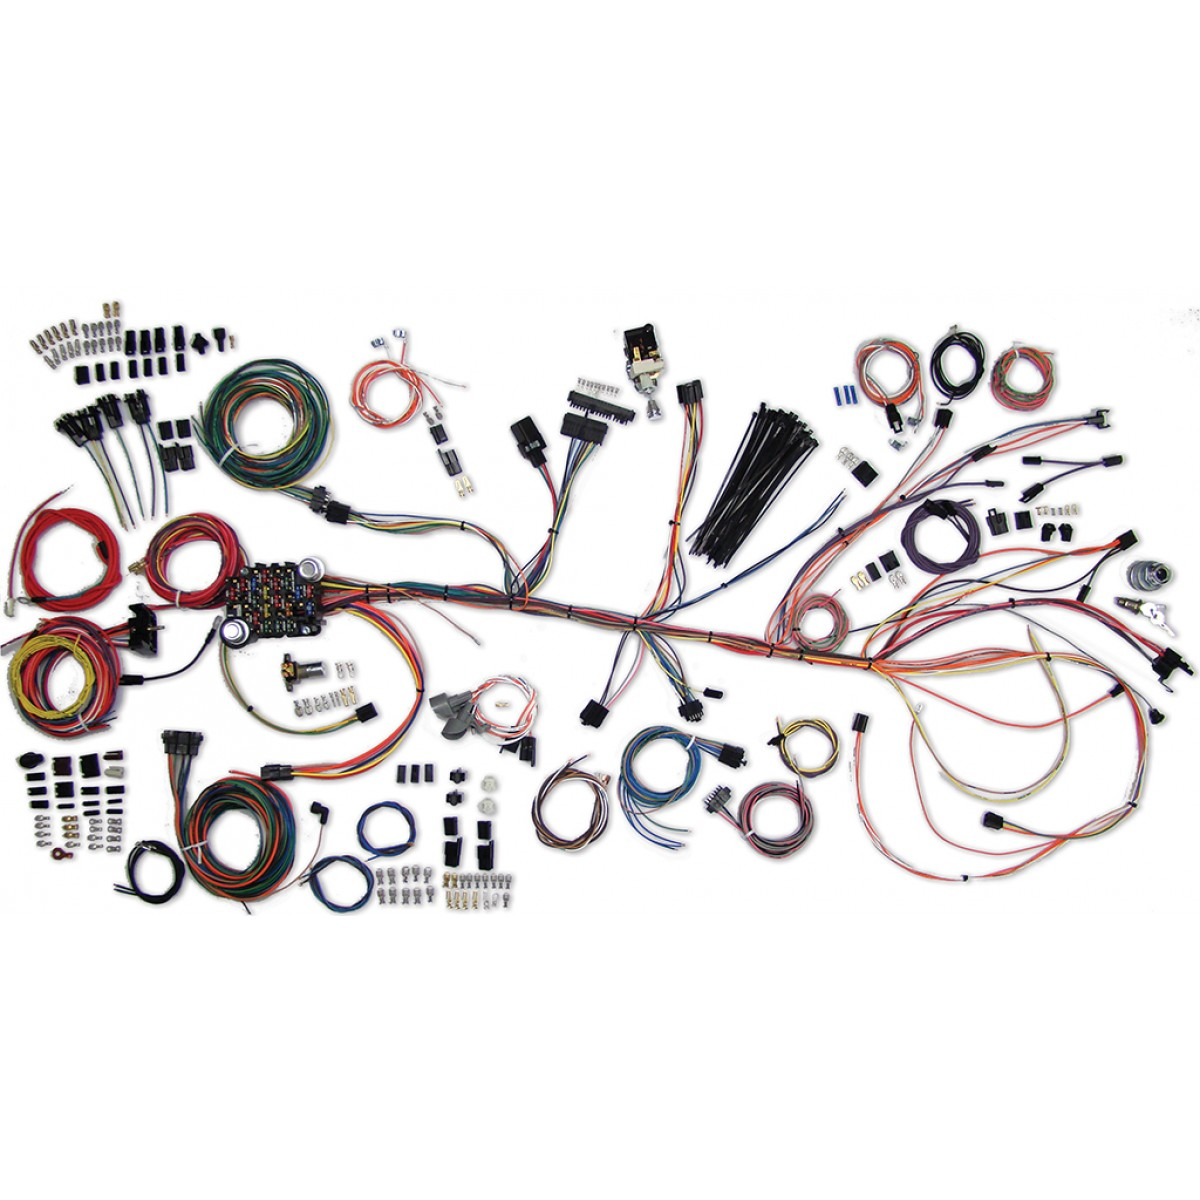 hight resolution of 1964 1967 el camino wiring harness kit el camino wiring part el camino dash wiring harness further 1967 chevelle fuel gauge wiring